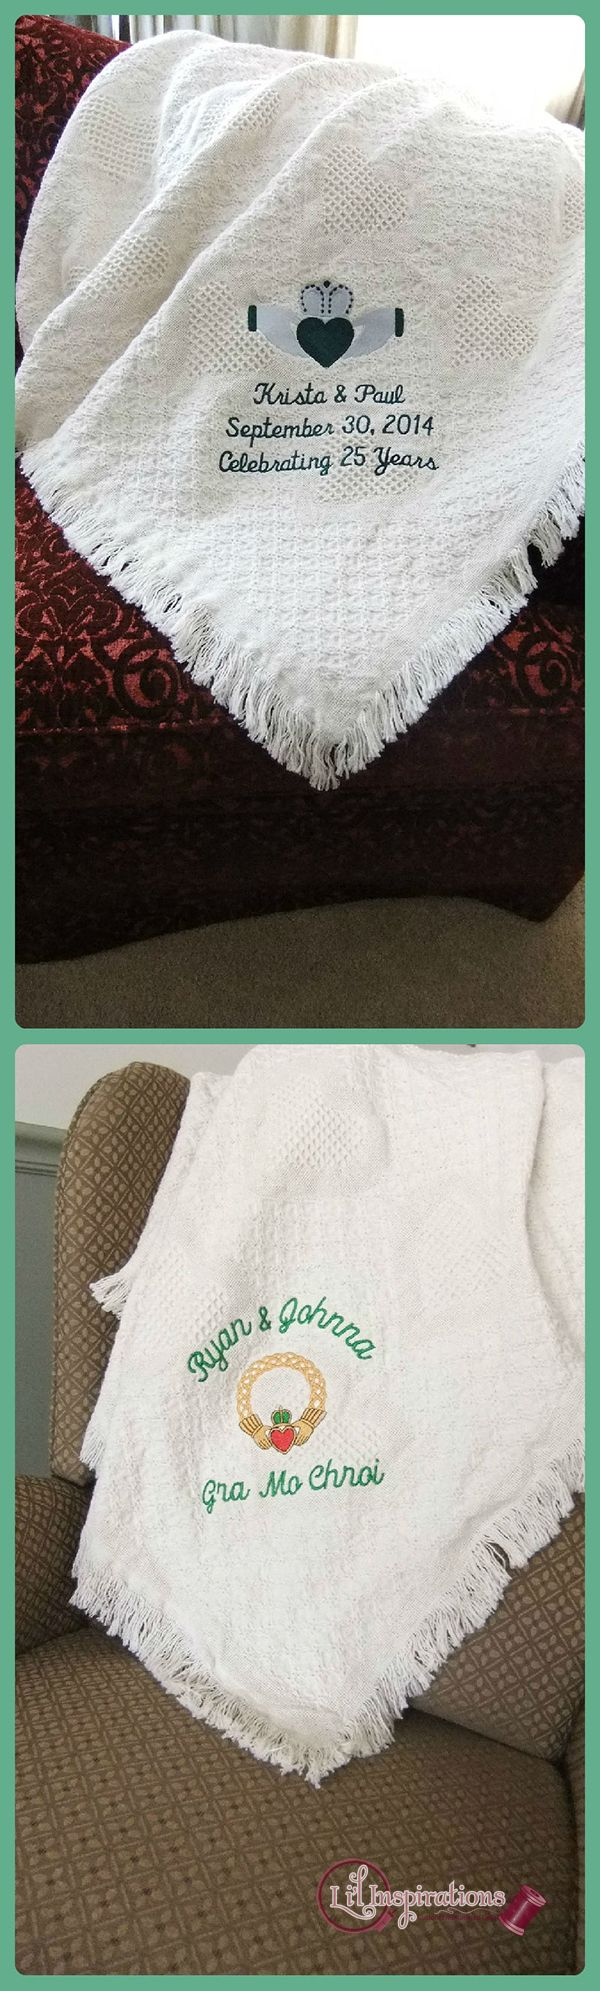 irish wedding wedding fun knitting blankets irish decor souvenir ideas ...